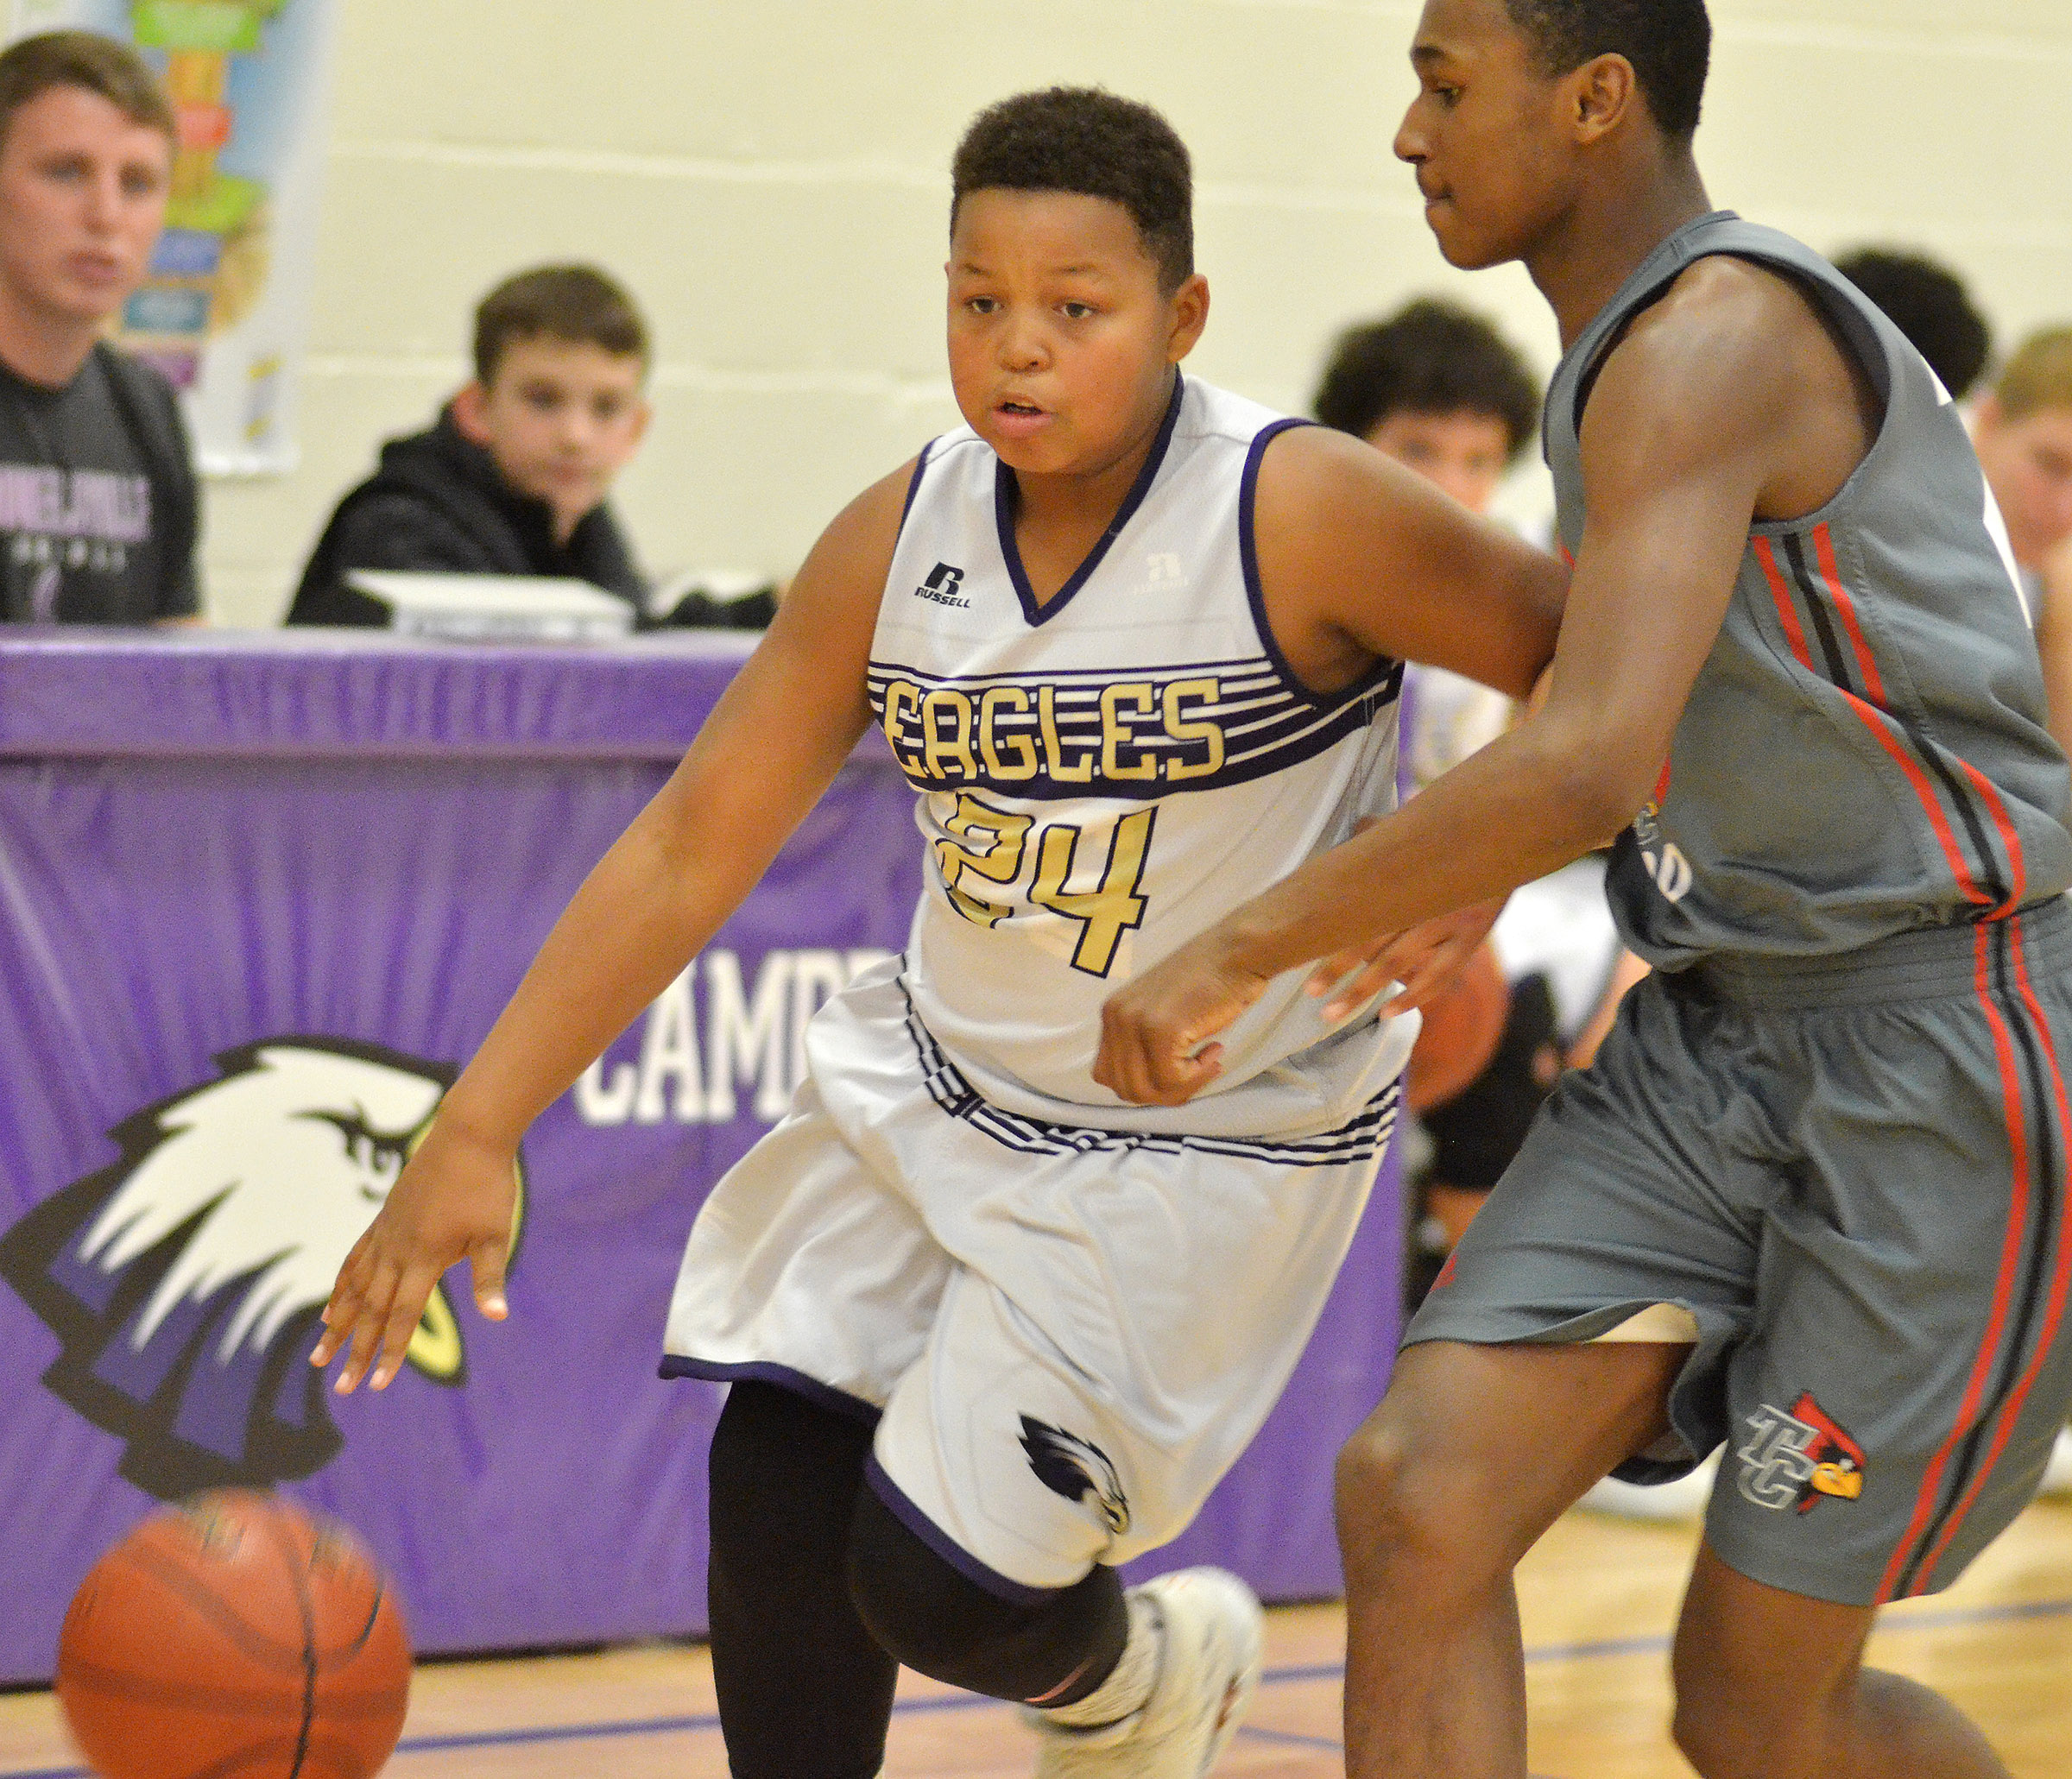 CMS seventh-grader Keondre Weathers dribbles to the basket.